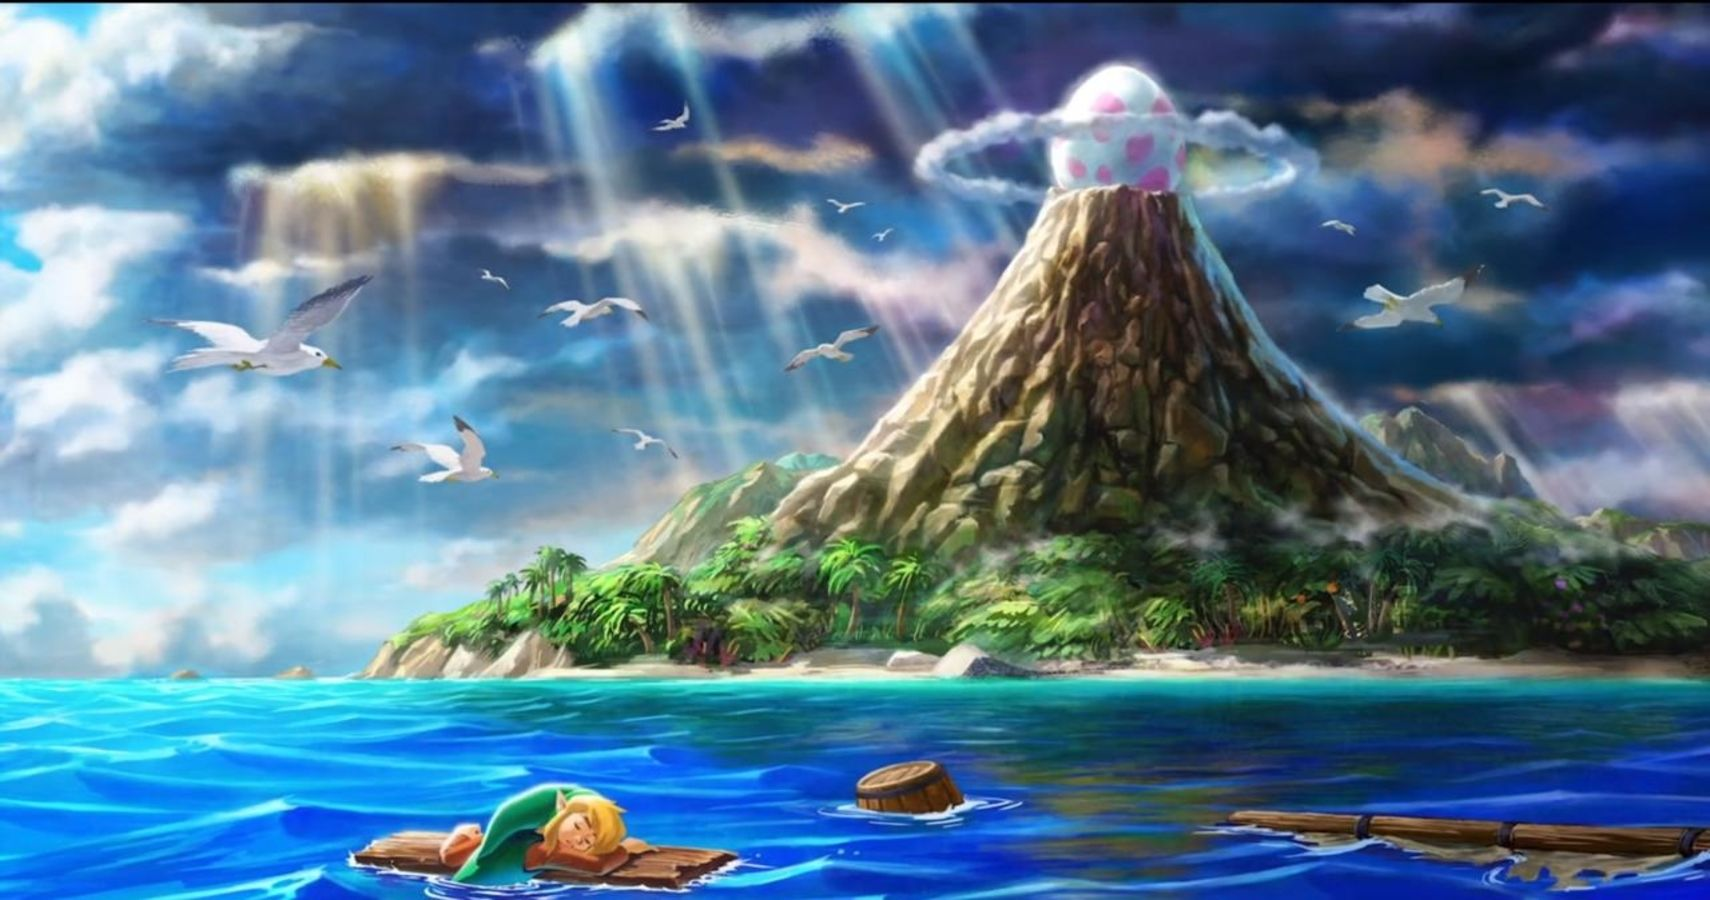 Link S Awakening Has The Worst Ending In The Whole Zelda Series